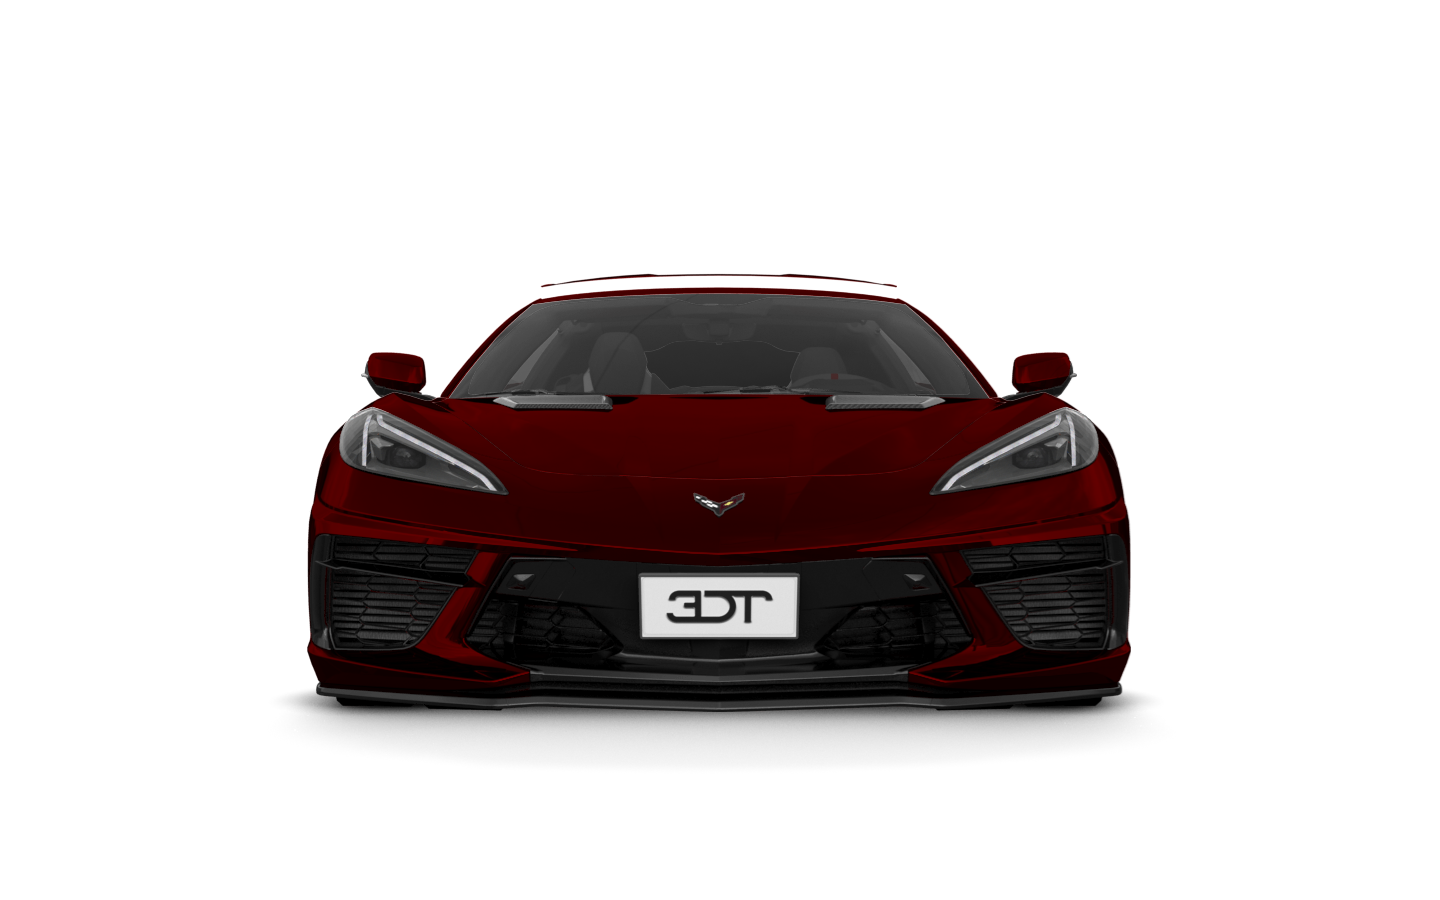 Chevrolet Corvette 2 door targa top 2020